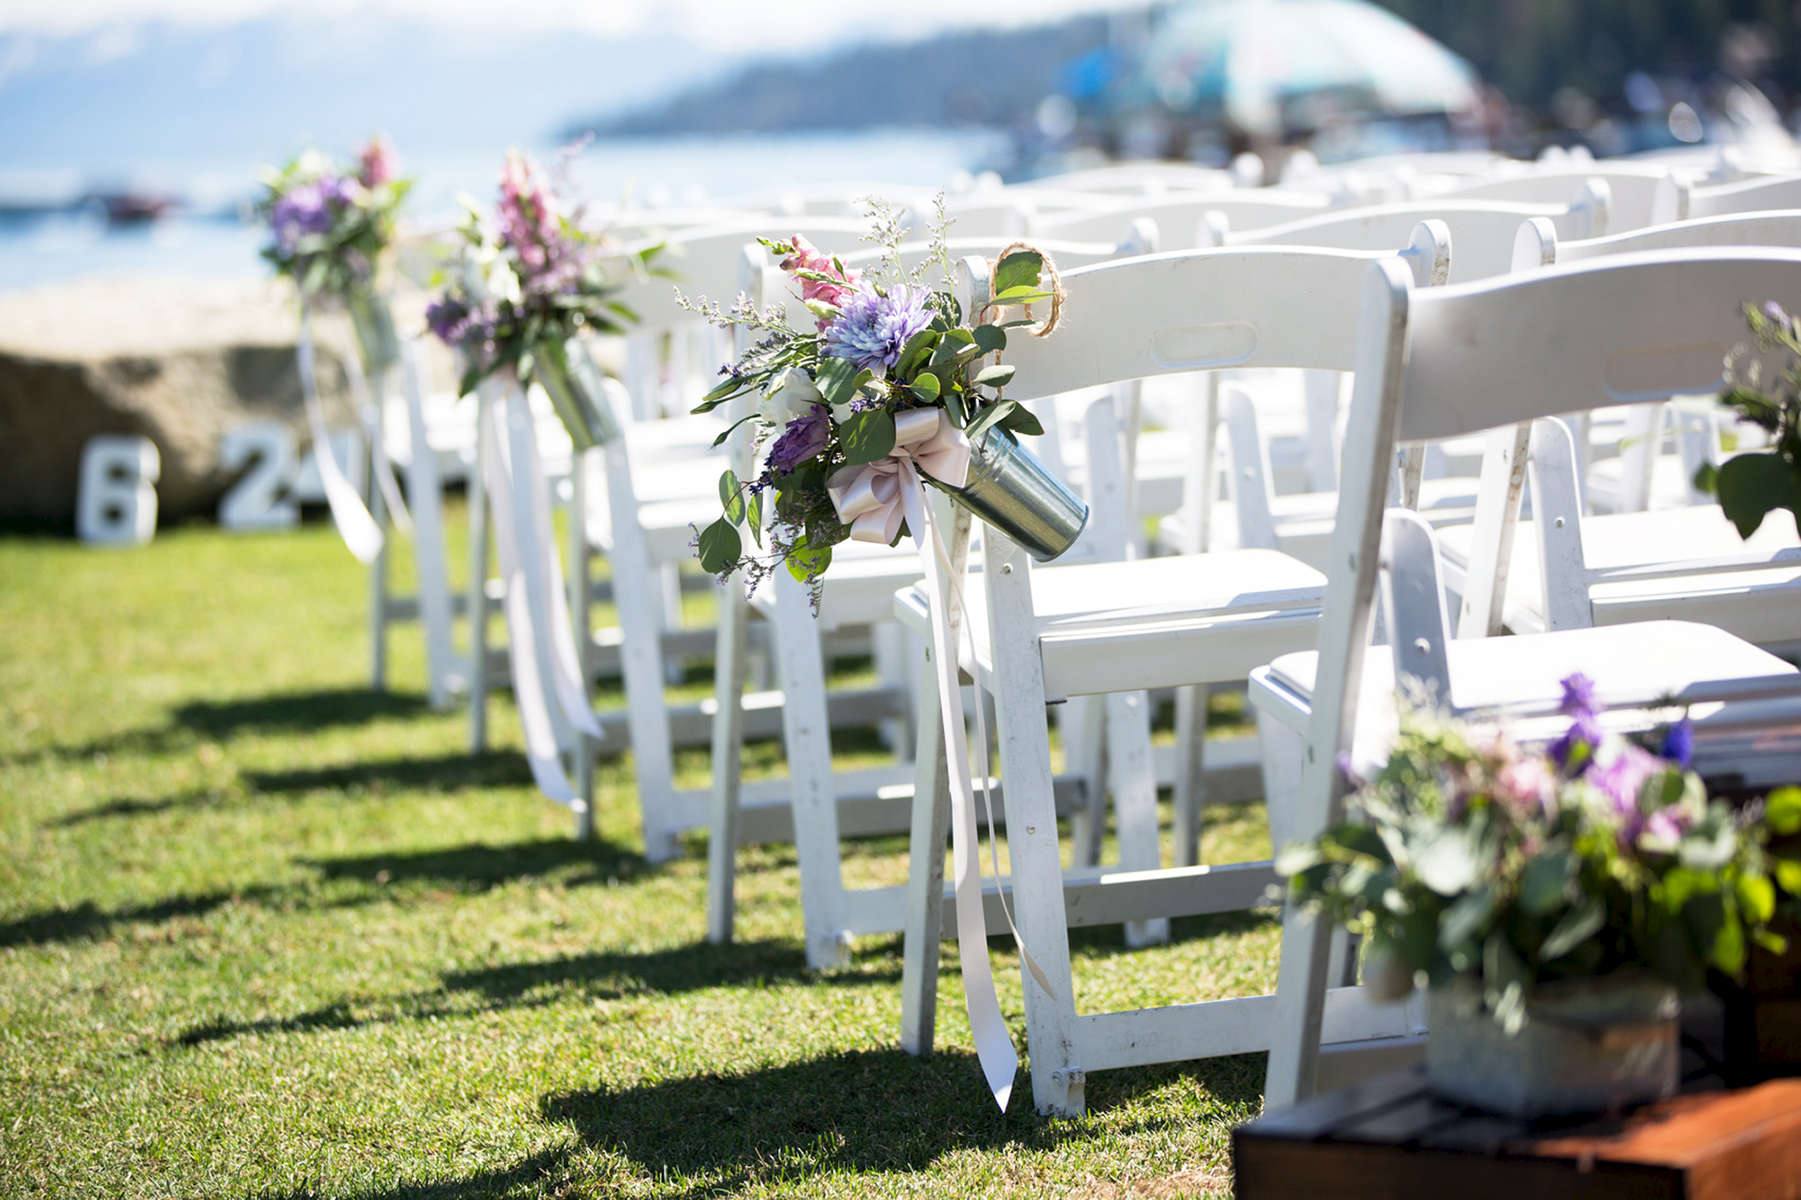 Tahoe-garwoods-wedding-ceremony-site